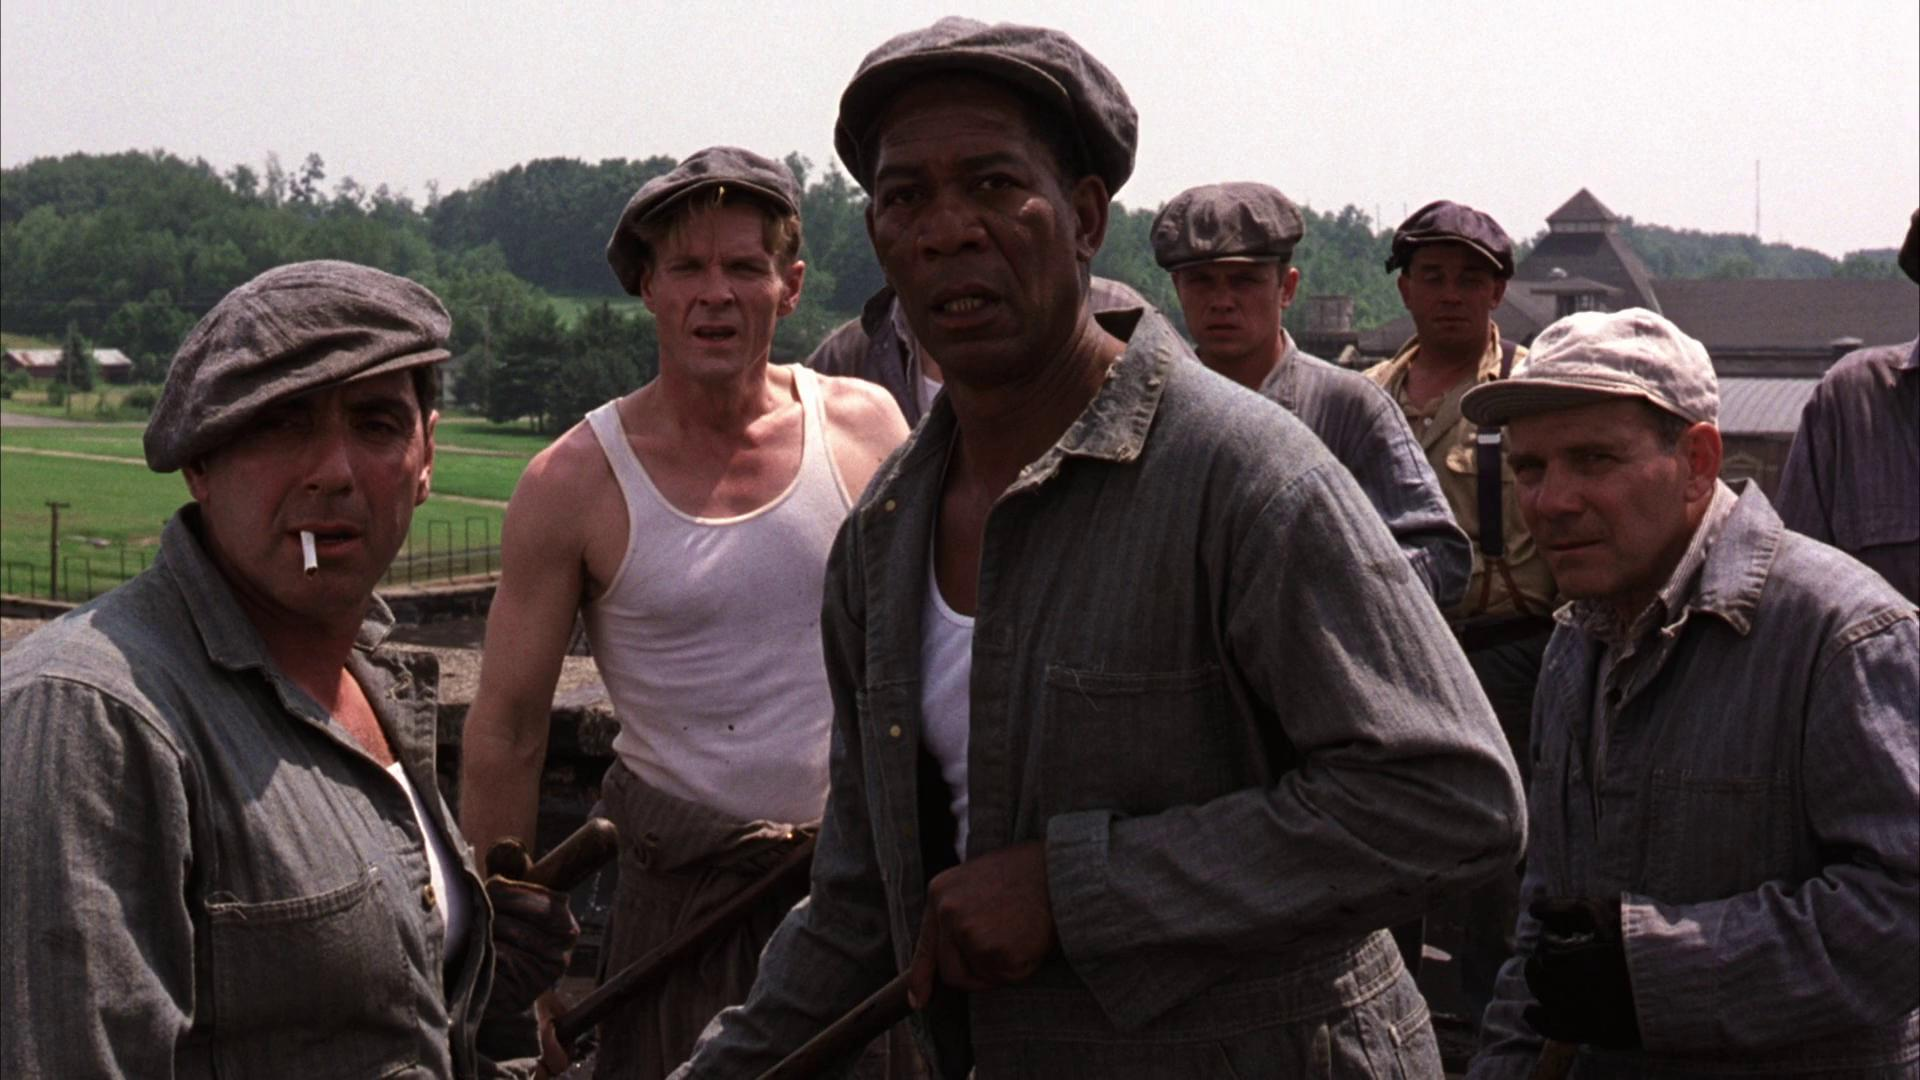 sociological concepts in shawshank redemption Shawshank redemption is more than a film about prison, it is a film about hope, friendship and inhumanity and among other aspects of society  the main character of the film andy is being accused, tried and convicted wrongly of a double murder that he always confessed his innocent and never lost the hope of that one day his innocent will be proven and he would get his freedom back and he also.